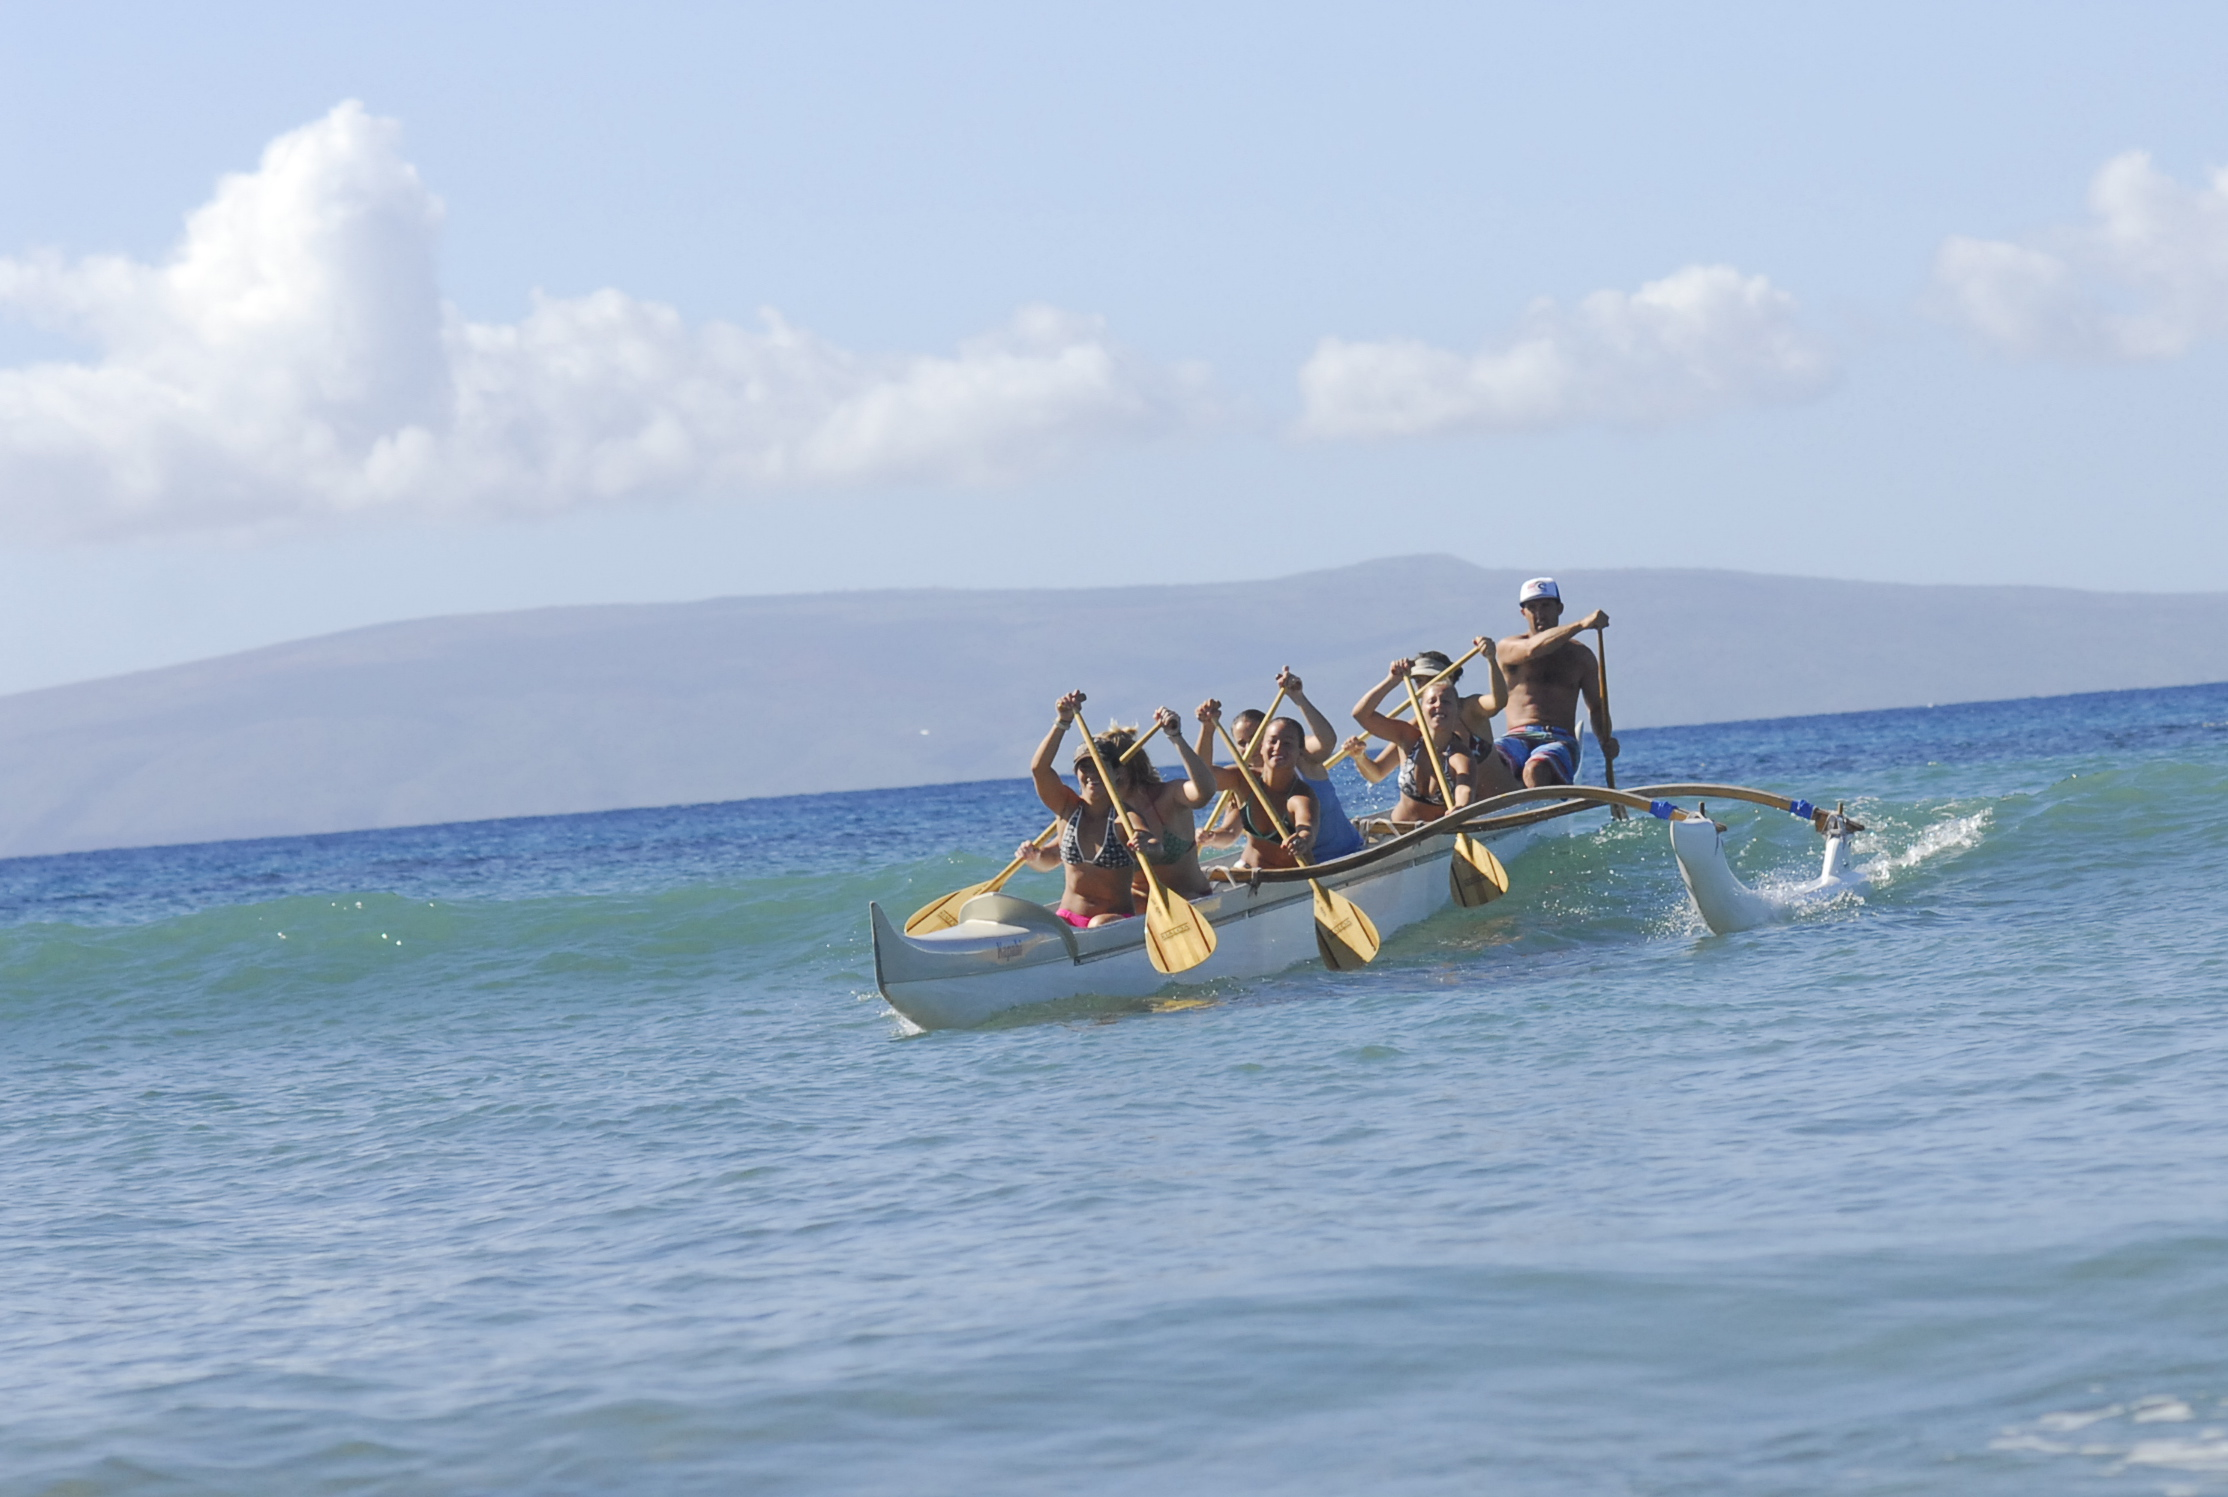 Turtle Watch & Canoe Surfing - Read More →